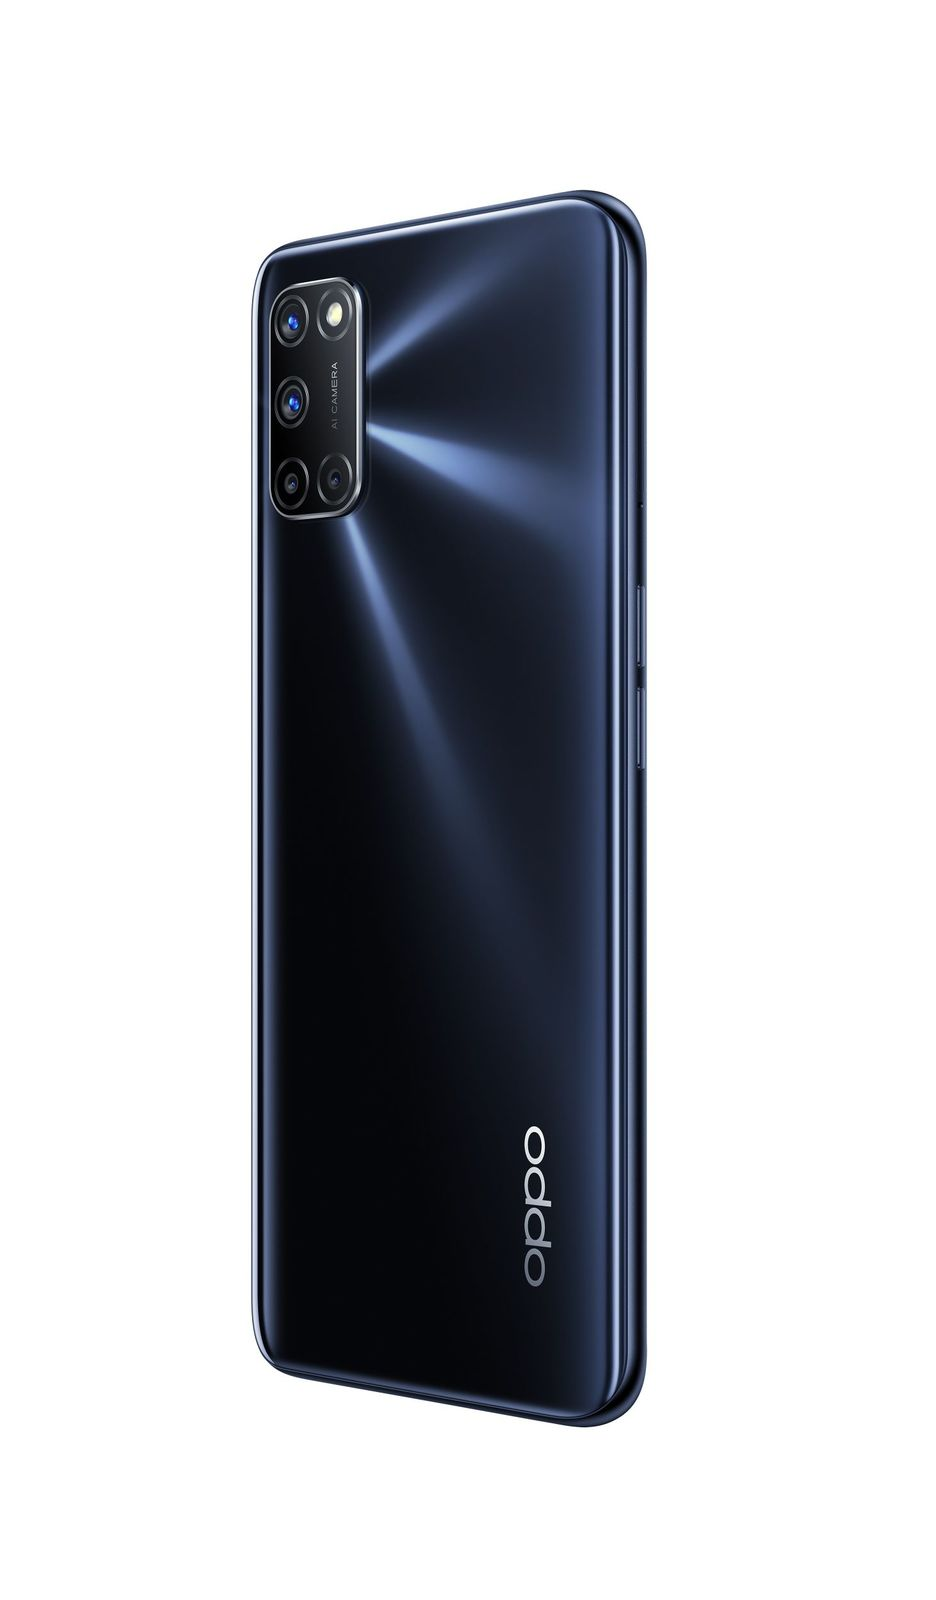 OPPO A72 Dual SIM (128GB/4GB RAM) - Twilight Black image